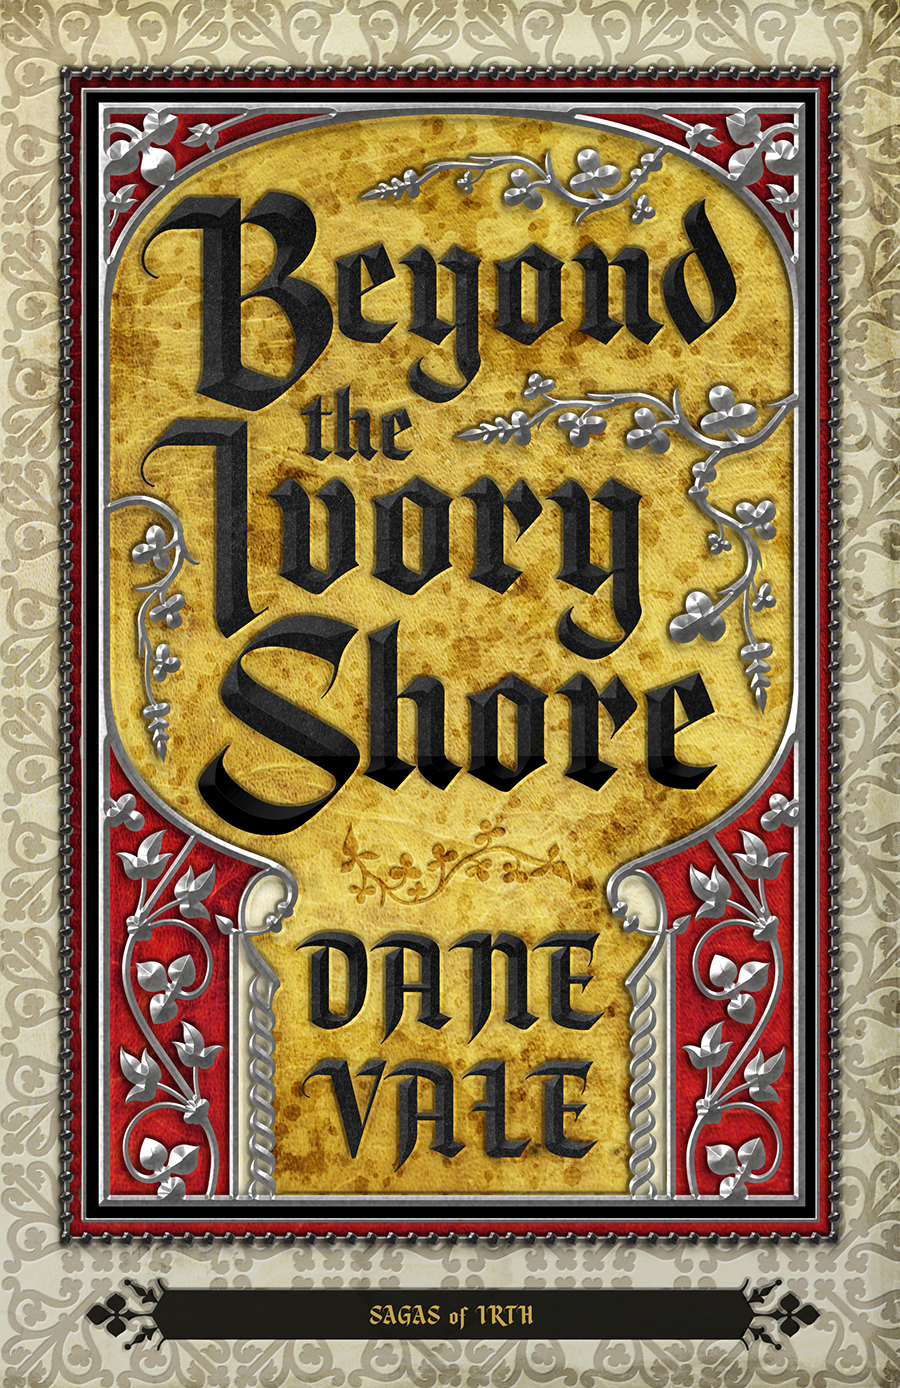 Beyond the Ivory Shore